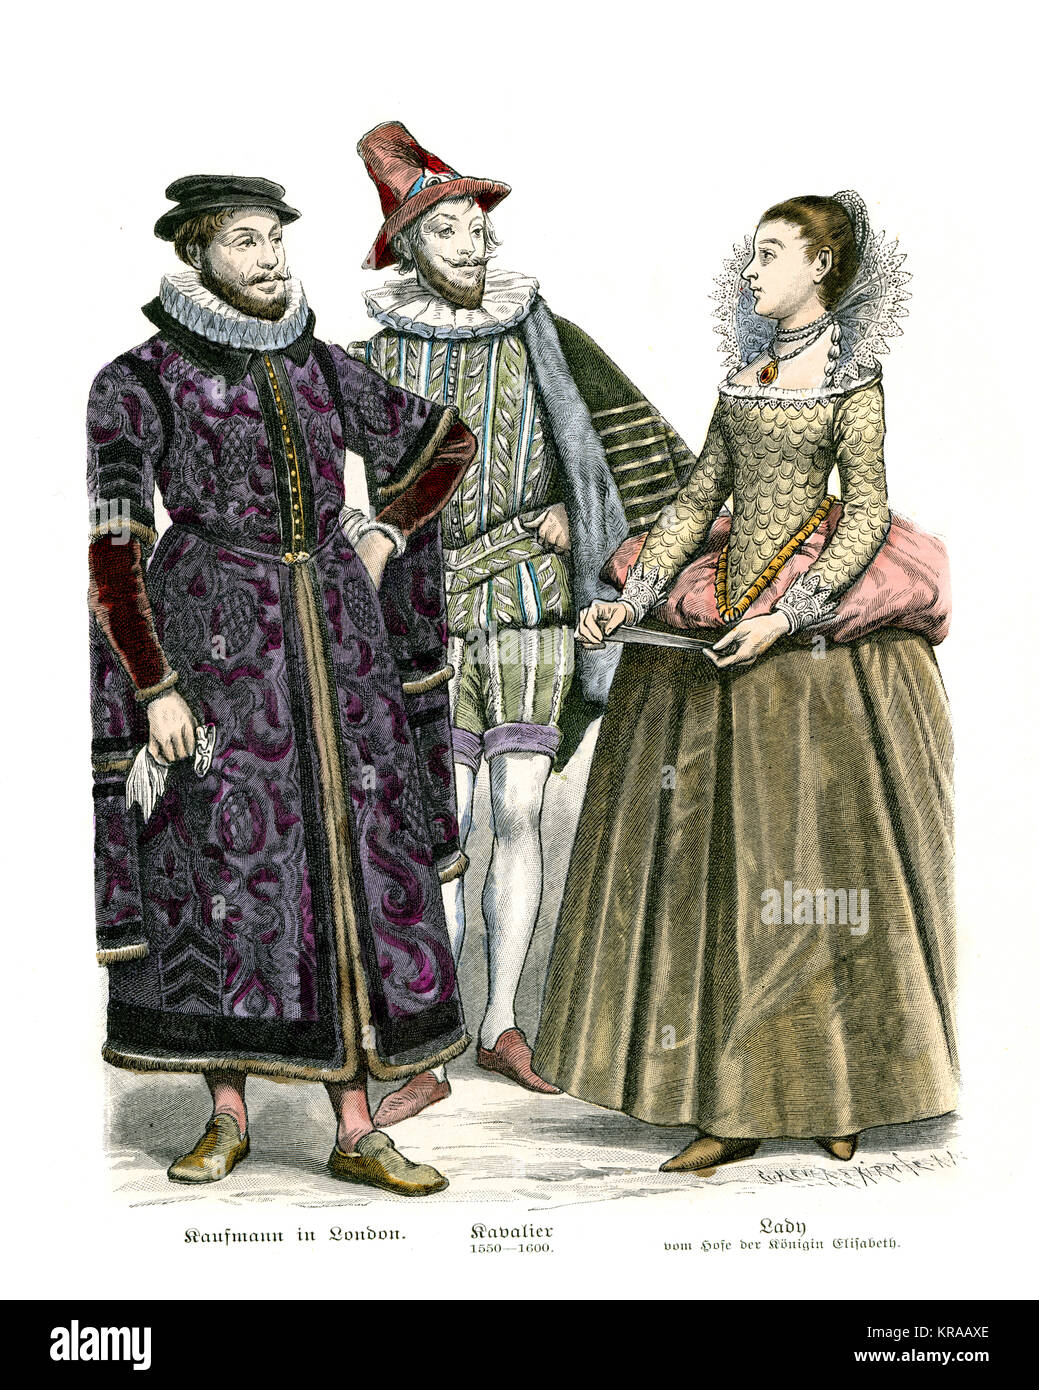 Fashions of the Tudor period. Merchant of London, Chevalier (1550 to 1600) and Lady of the Court of Queen Elizabeth - Stock Image